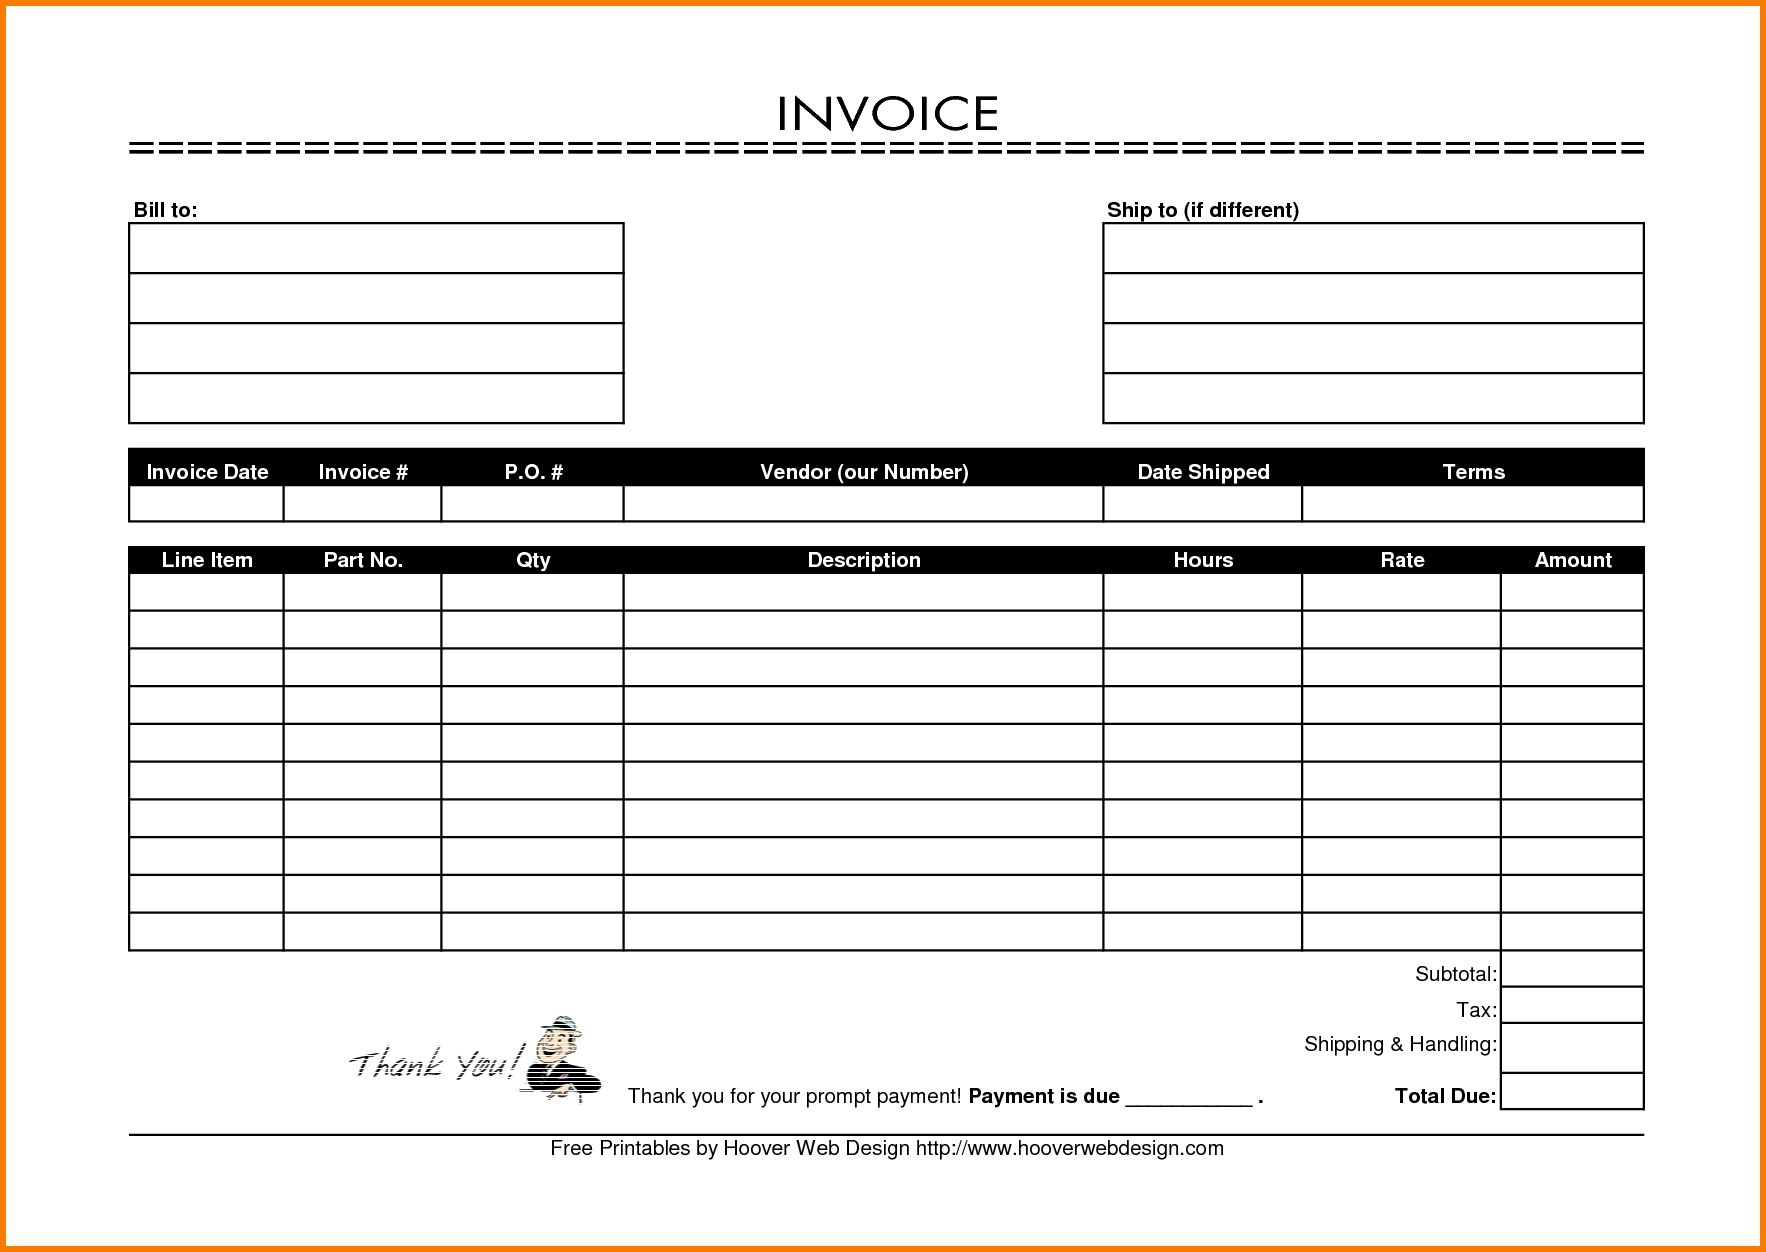 7 Printable Invoice Template Receipt Templates Free 245 Hsbcu Printable Invoices Free Printable Invoice Invoice Template Invoice Template Word